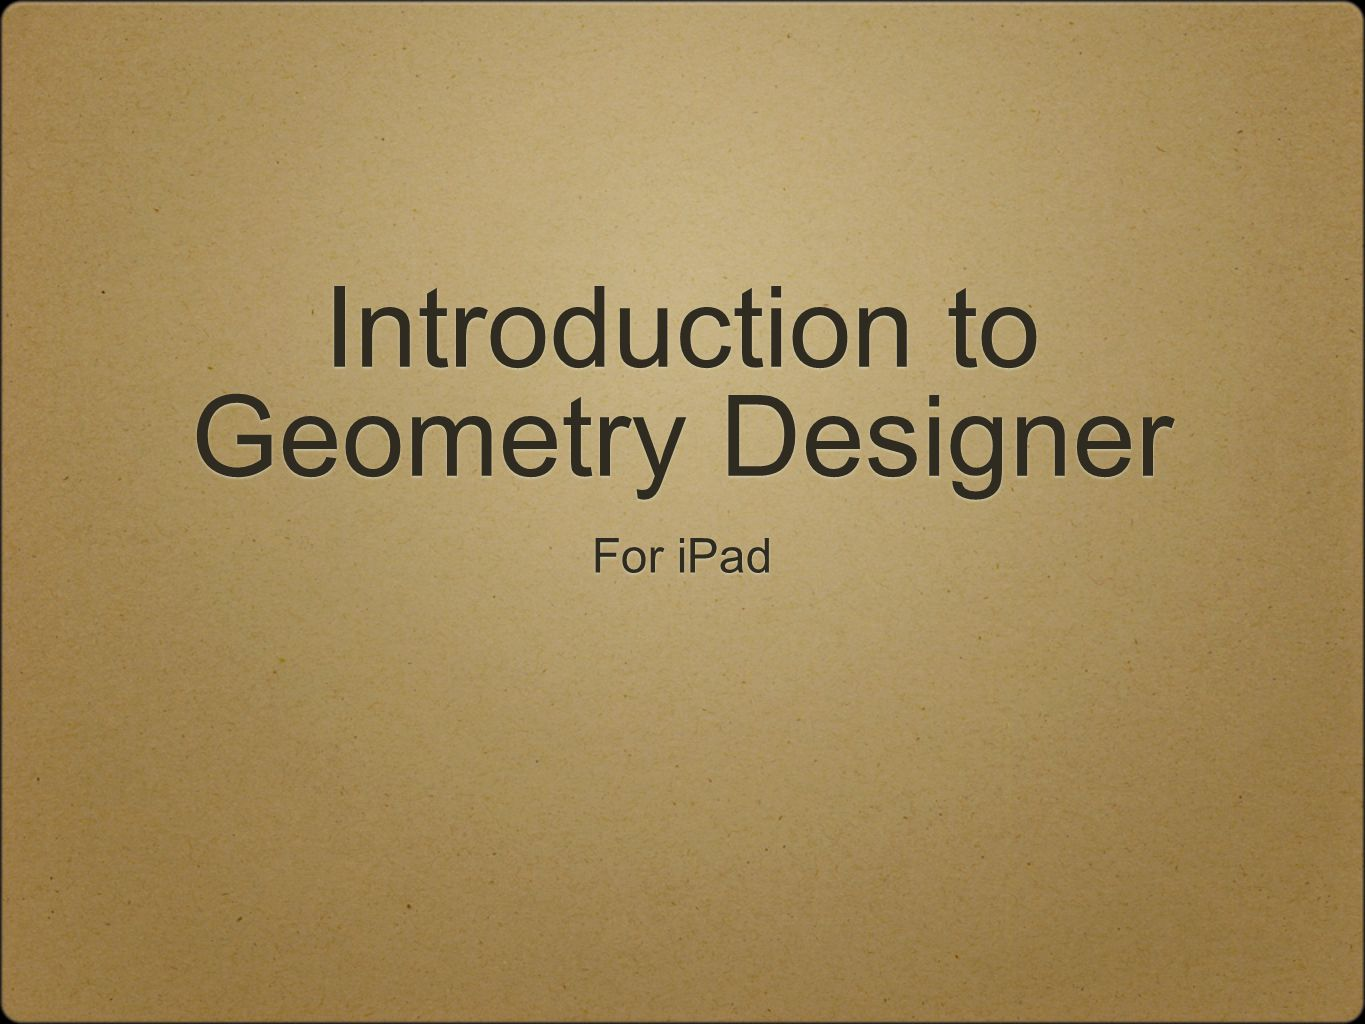 Introduction to Geometry Designer For iPad